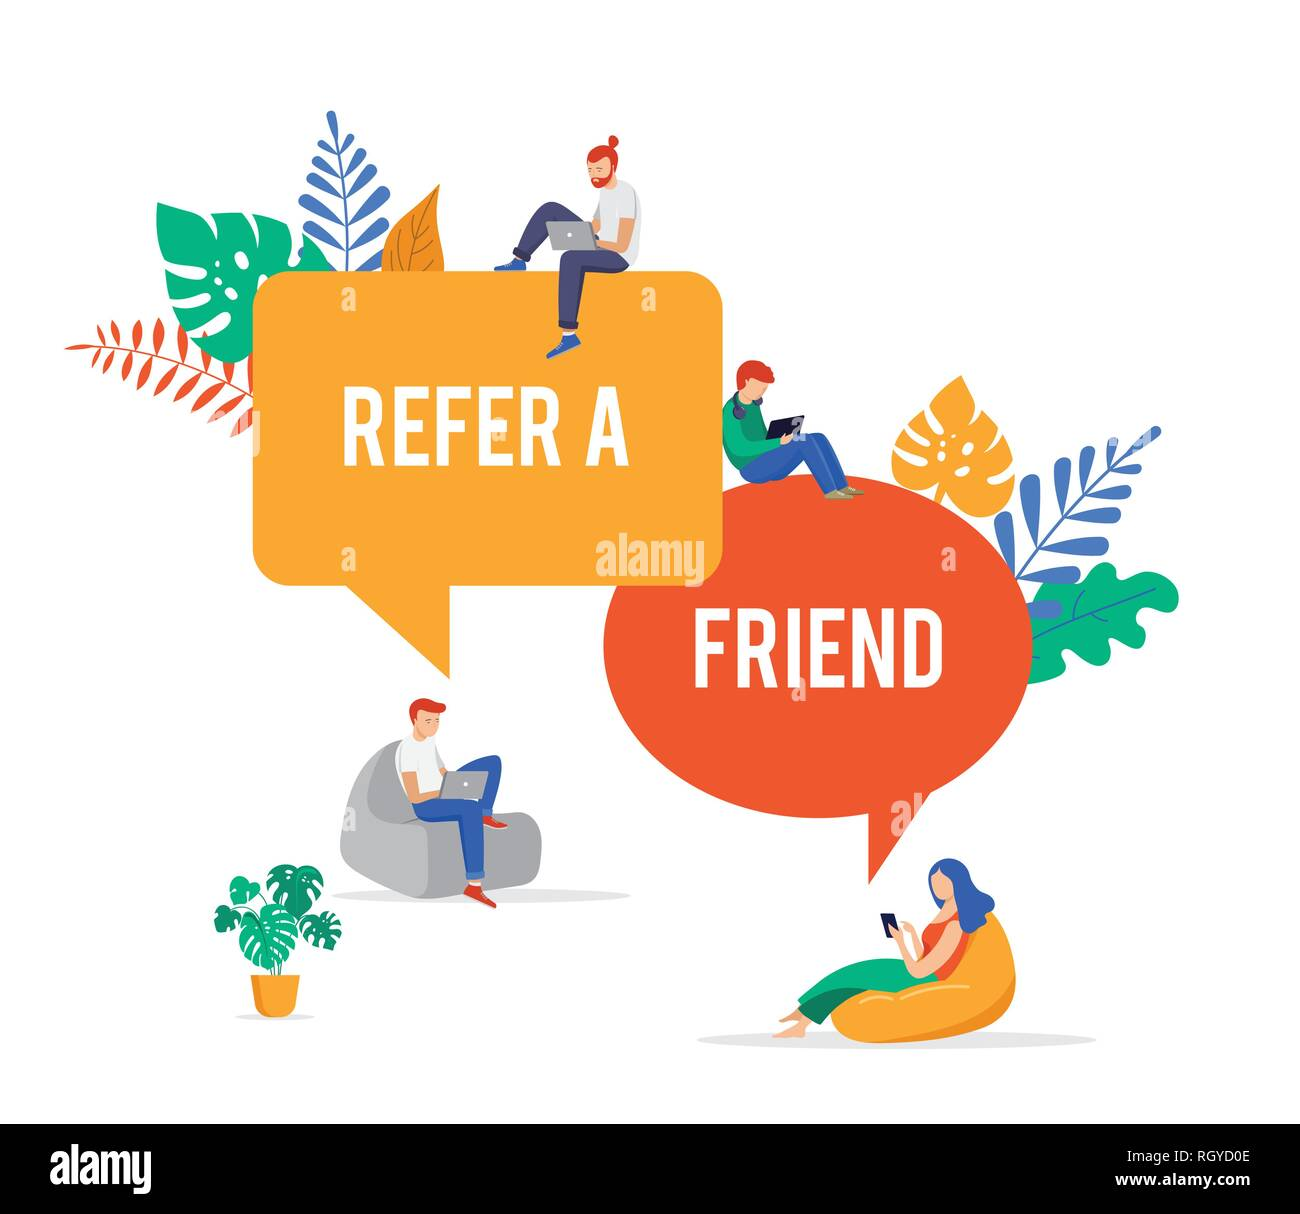 Refer a friend illustration. Big megaphone with a team work. Concept media for landing page, template, ui, website - Stock Image